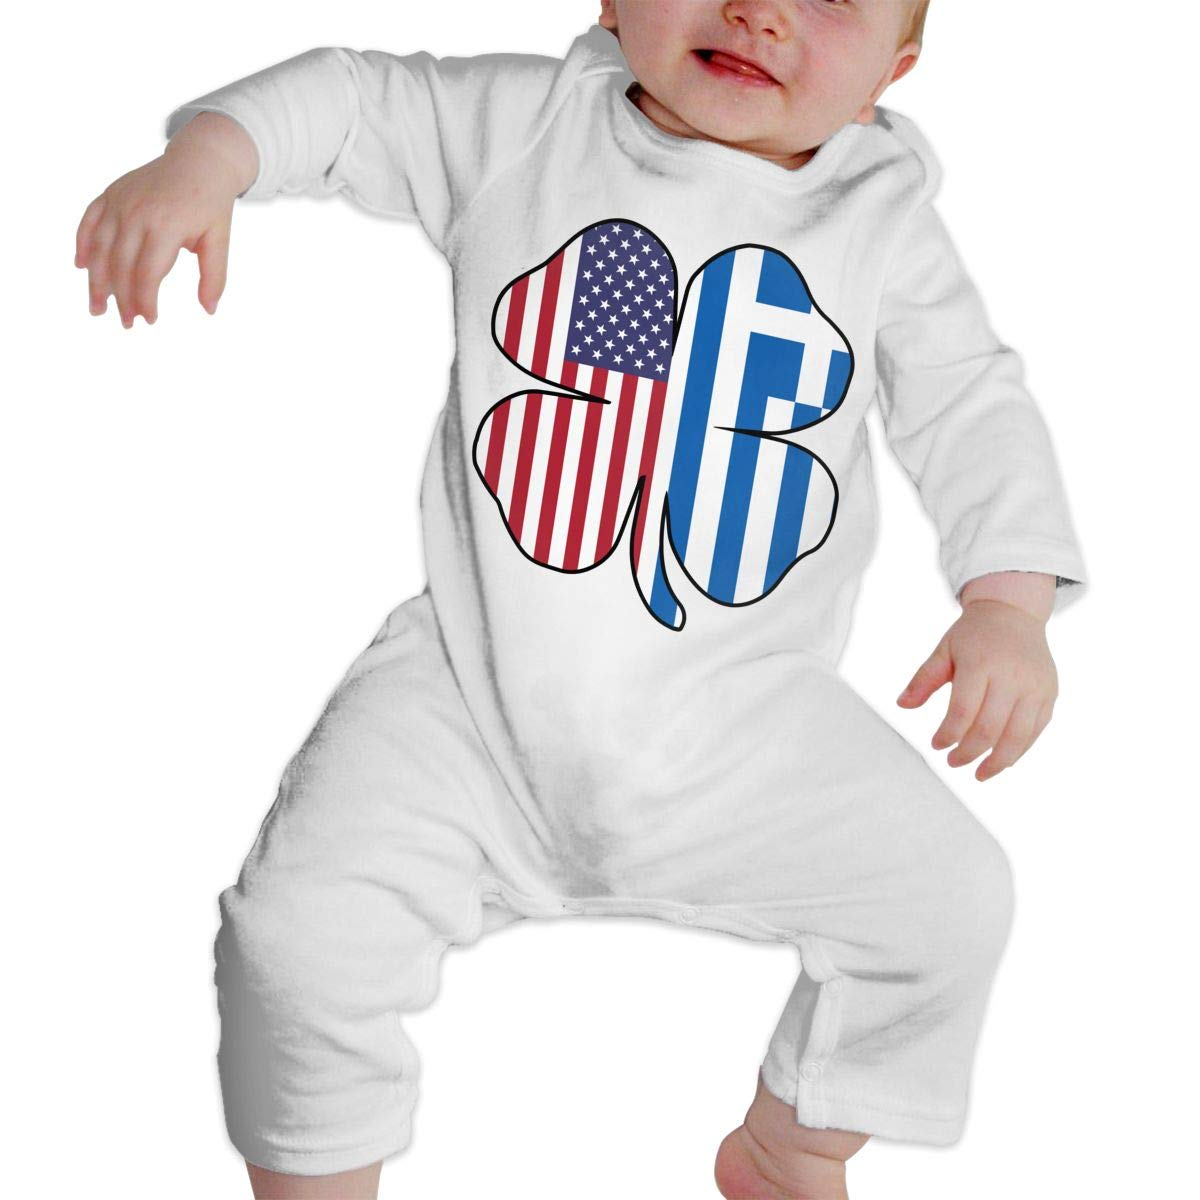 A1BY-5US Infant Babys Cotton Long Sleeve American Greece Greek Flag Shamrock Climb Romper Funny Printed Romper Clothes